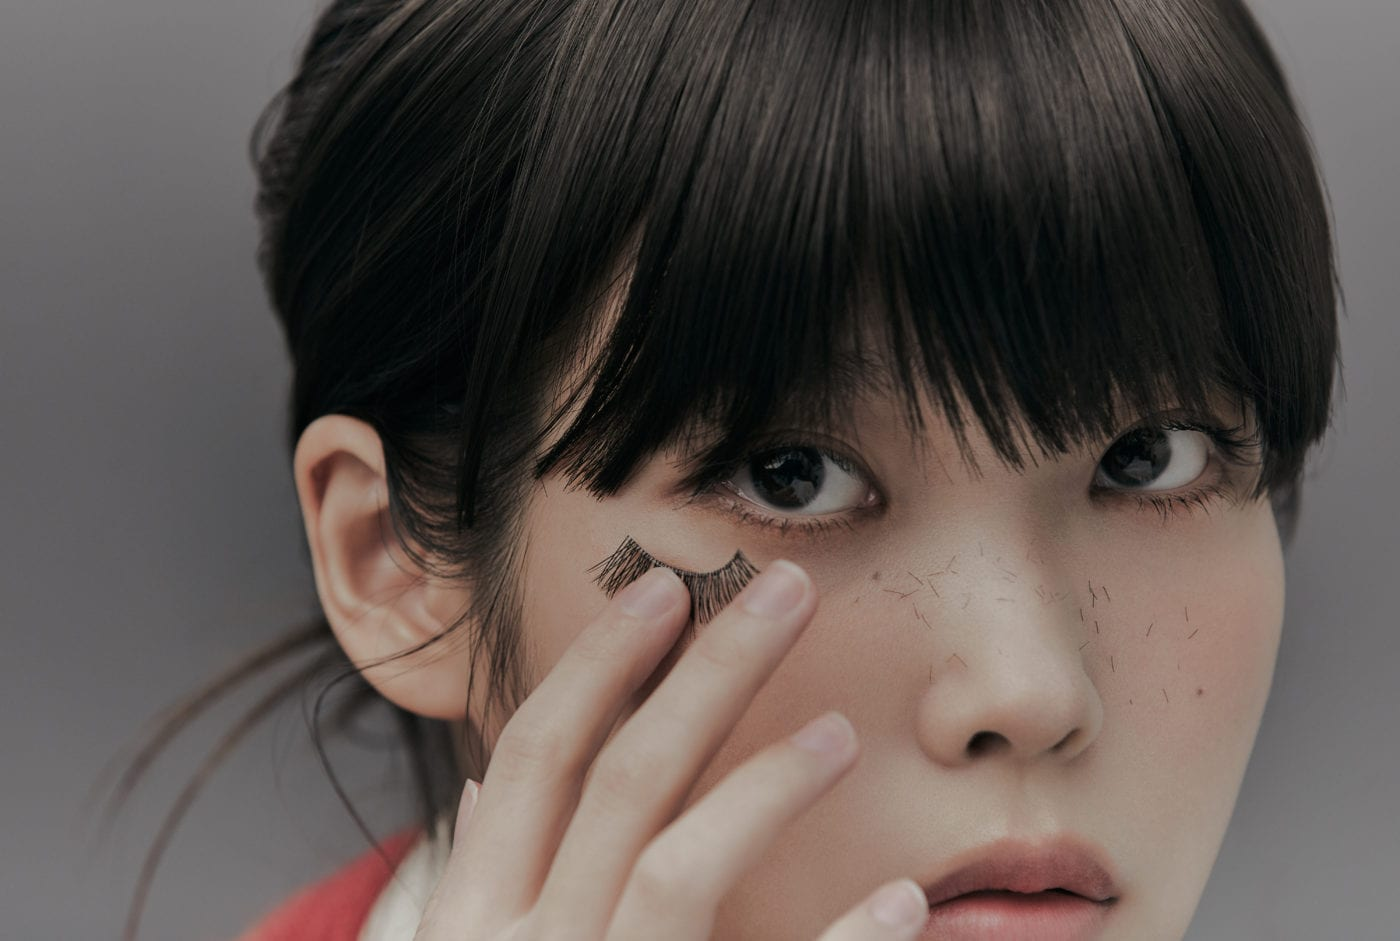 IU talks about dealing with insomnia, her upcoming album and more